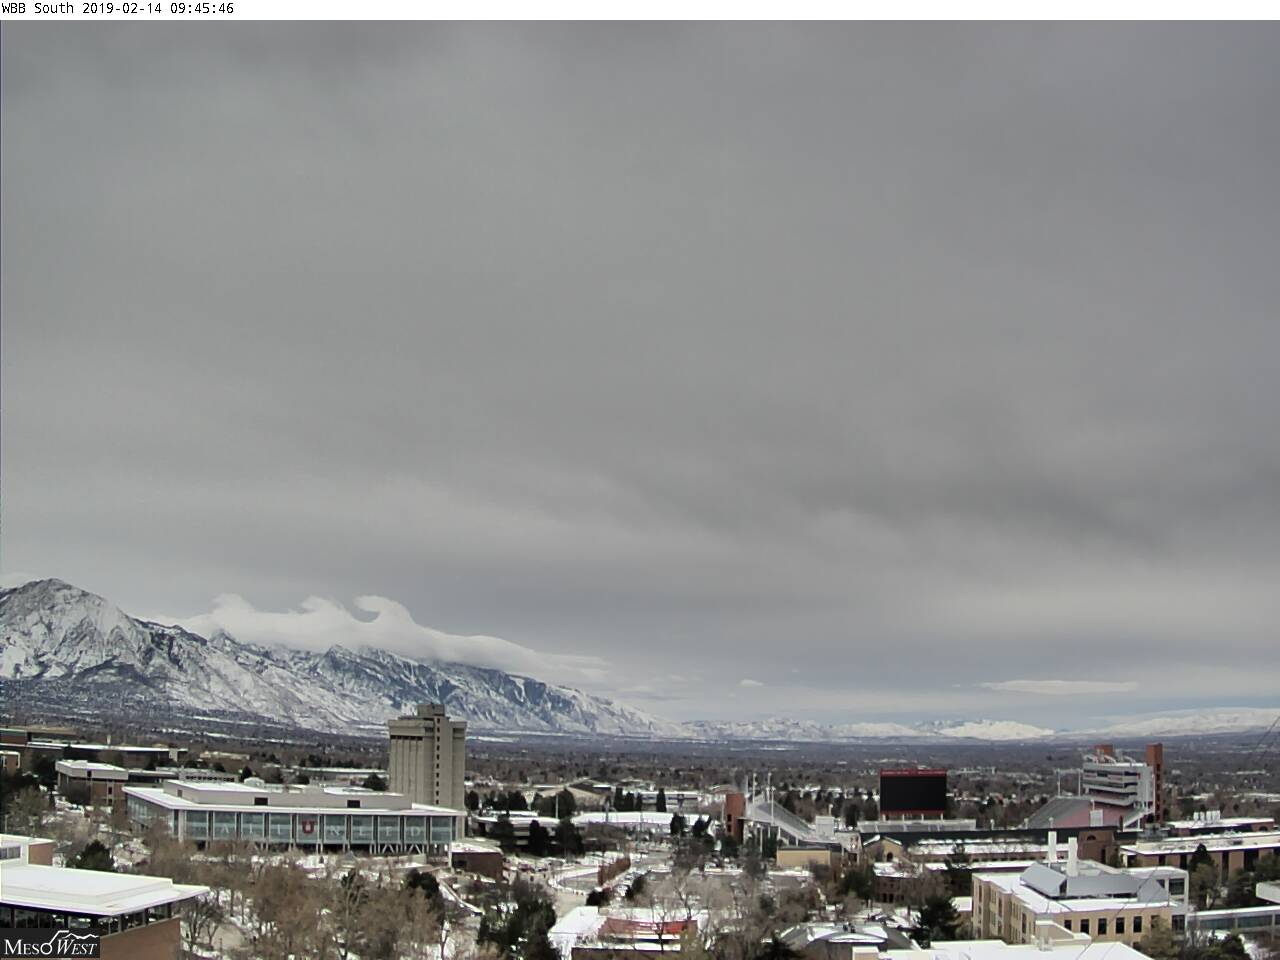 Looking south Thu morning from University of Utah. Image courtesy of MesoWest cameras and Brian Blaylock at http://home.chpc.utah.edu/~u0553130/Camera_Display/wbbs.html